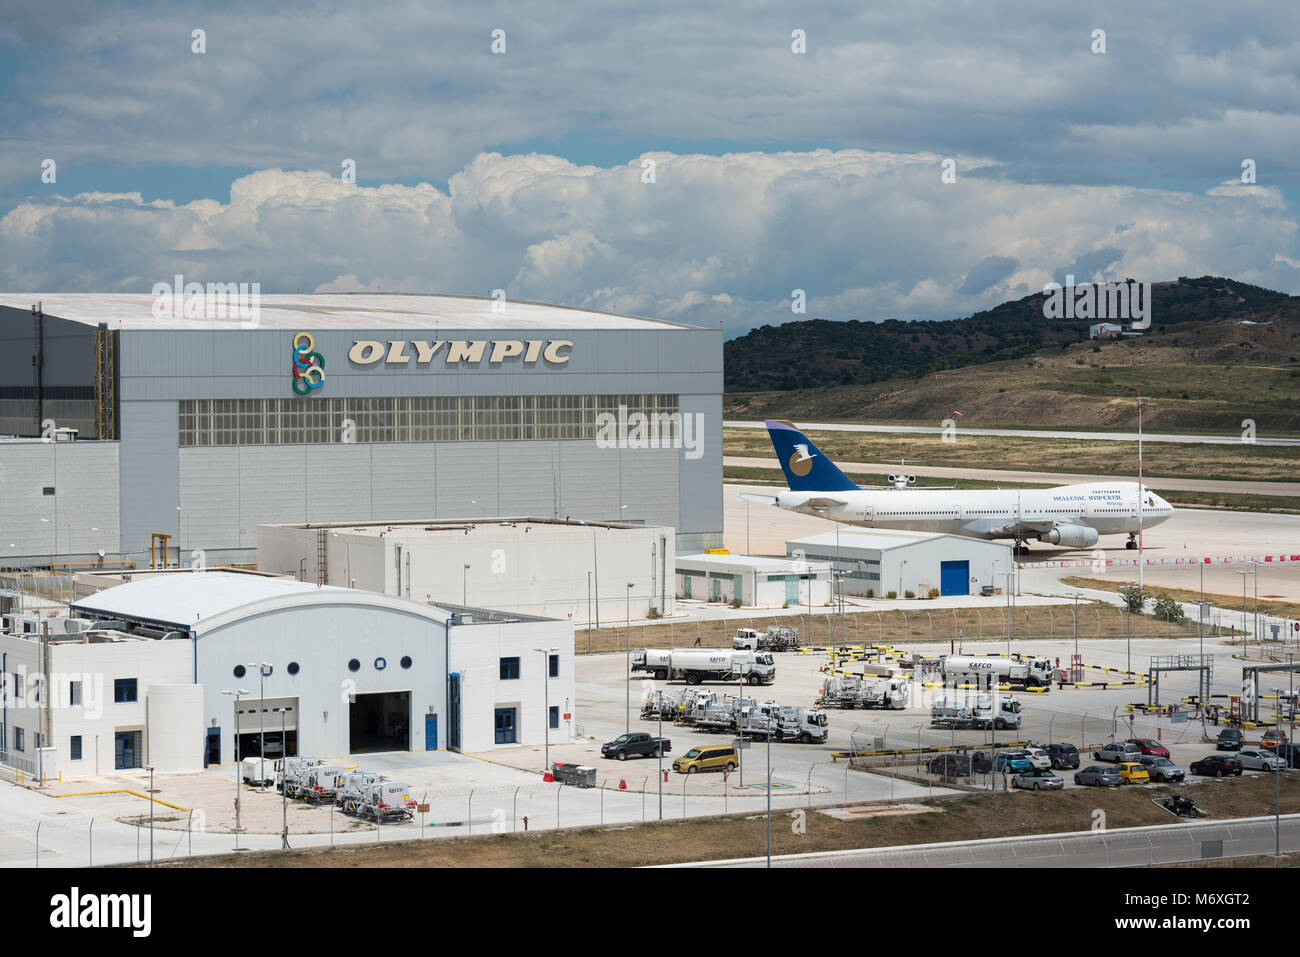 Olympic Airways hangar and logo with fuel trucks in foreground on Athens International Airport Stock Photo